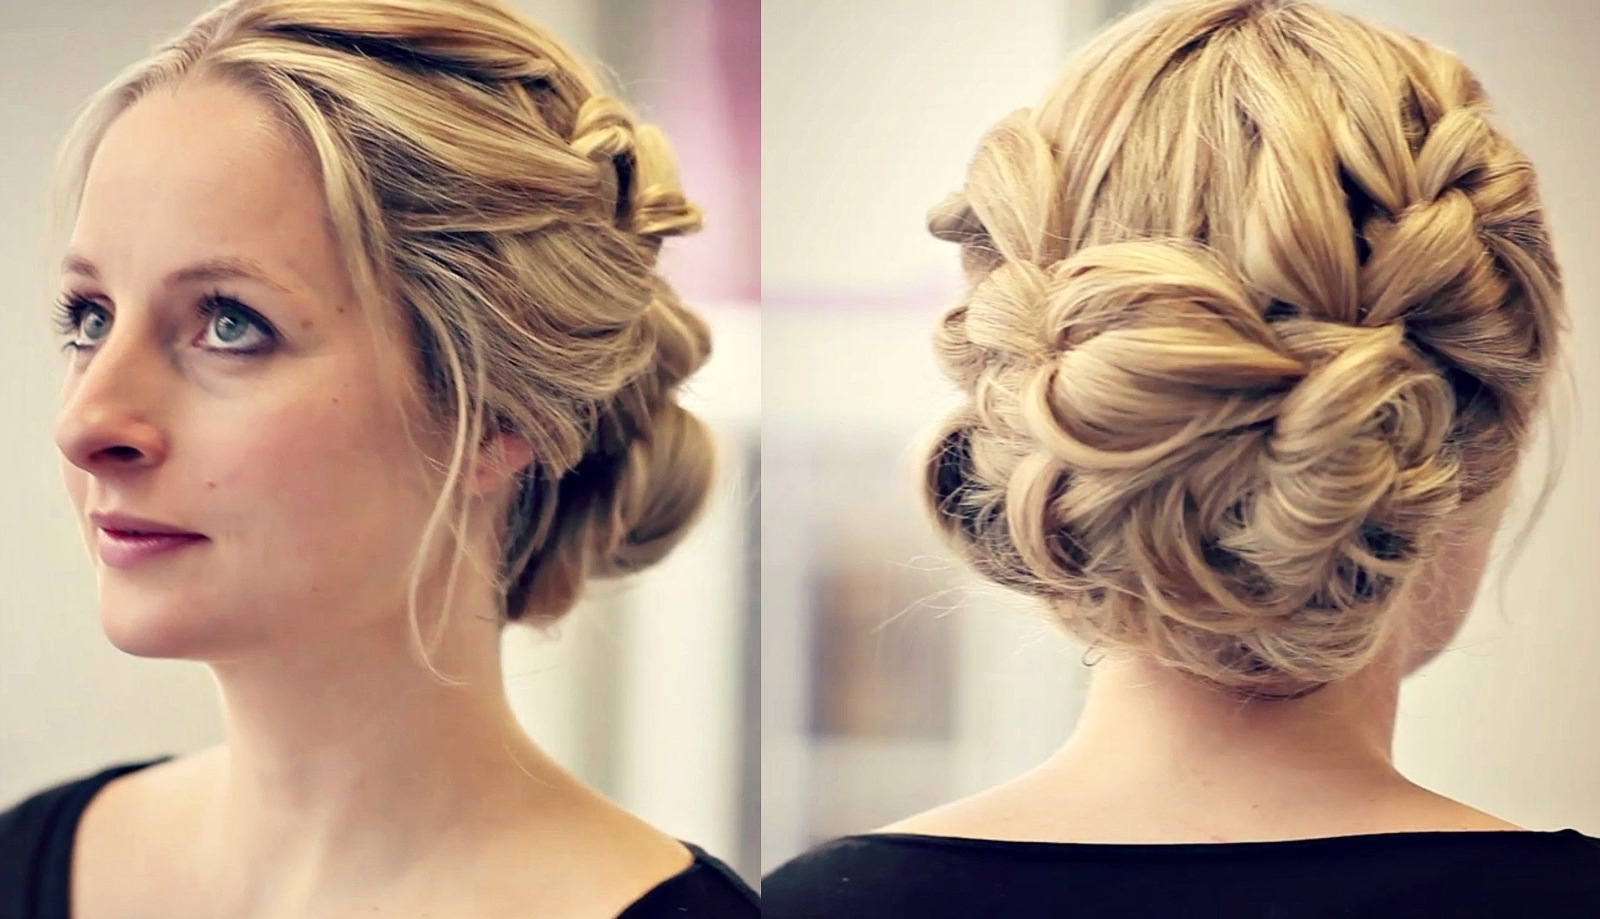 Bridal Hairstyles For Short Hair Updos | Trend Hairstyle And Haircut For Wedding Updo Hairstyles For Short Hair (View 4 of 15)